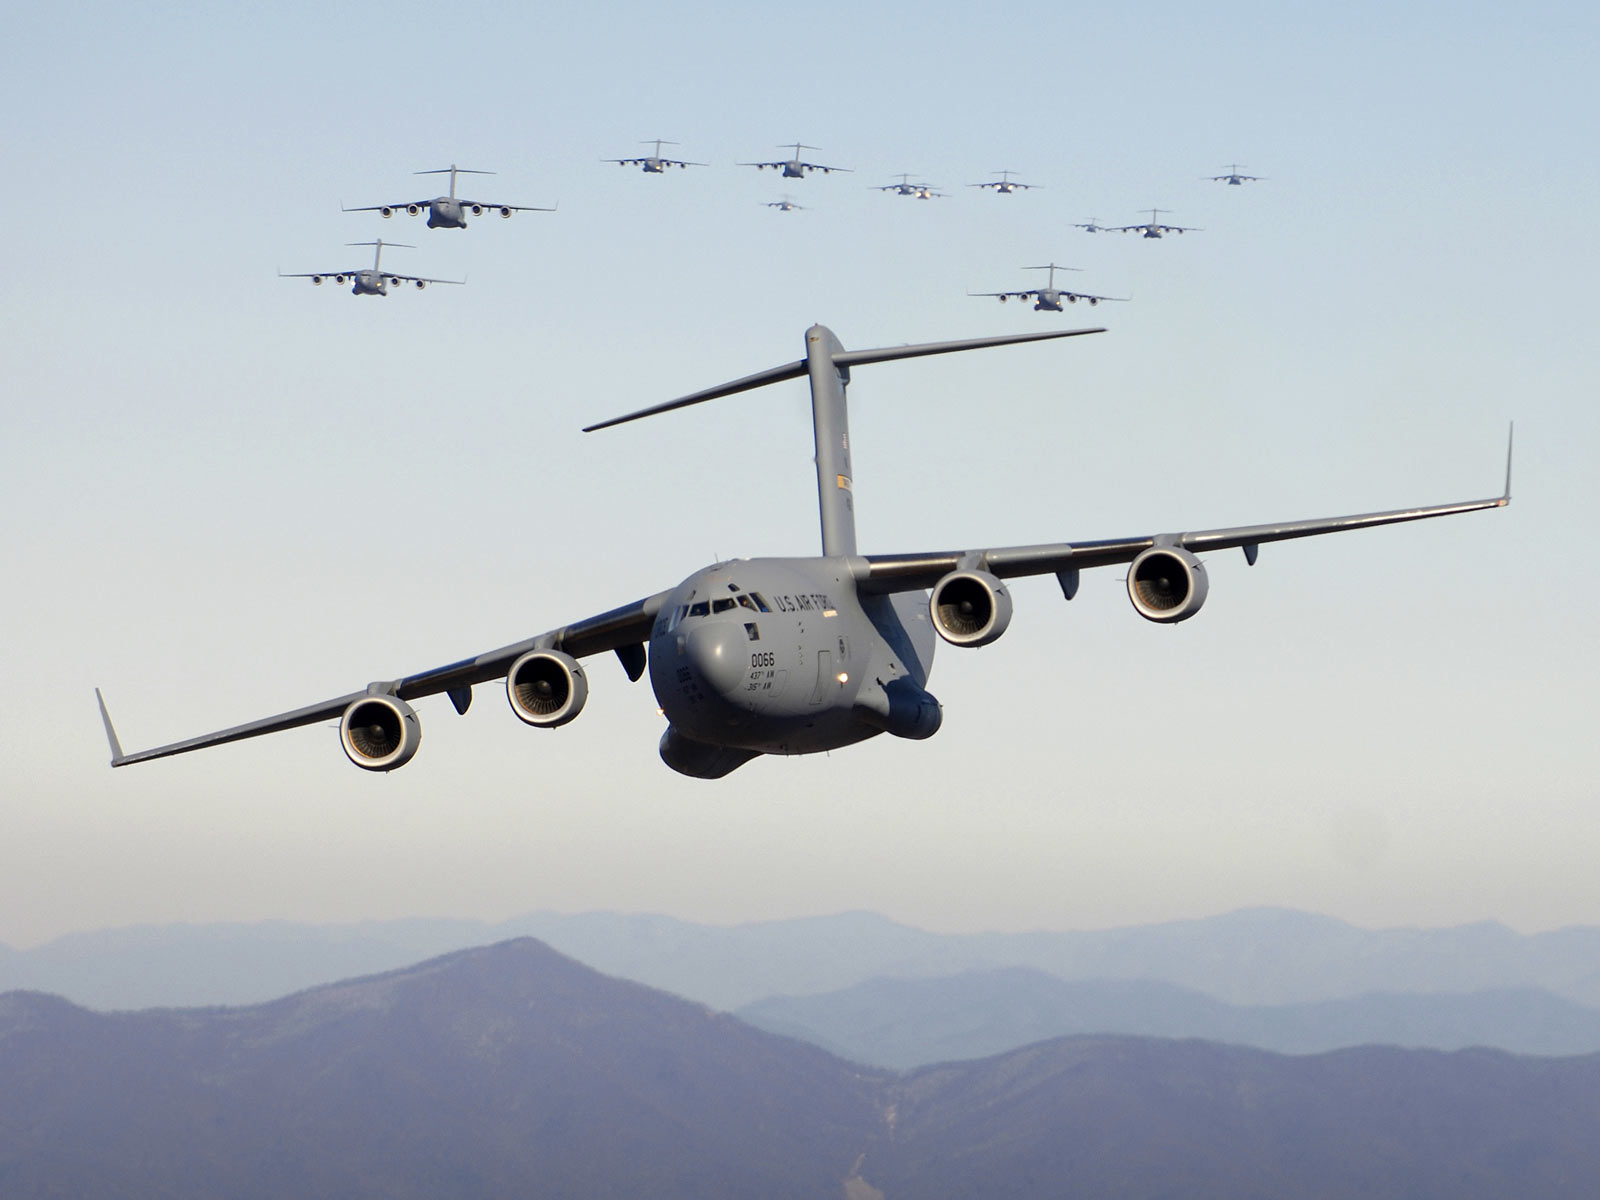 Desktop Wallpaper · Motors · Aircraft C-17 Globemaster III